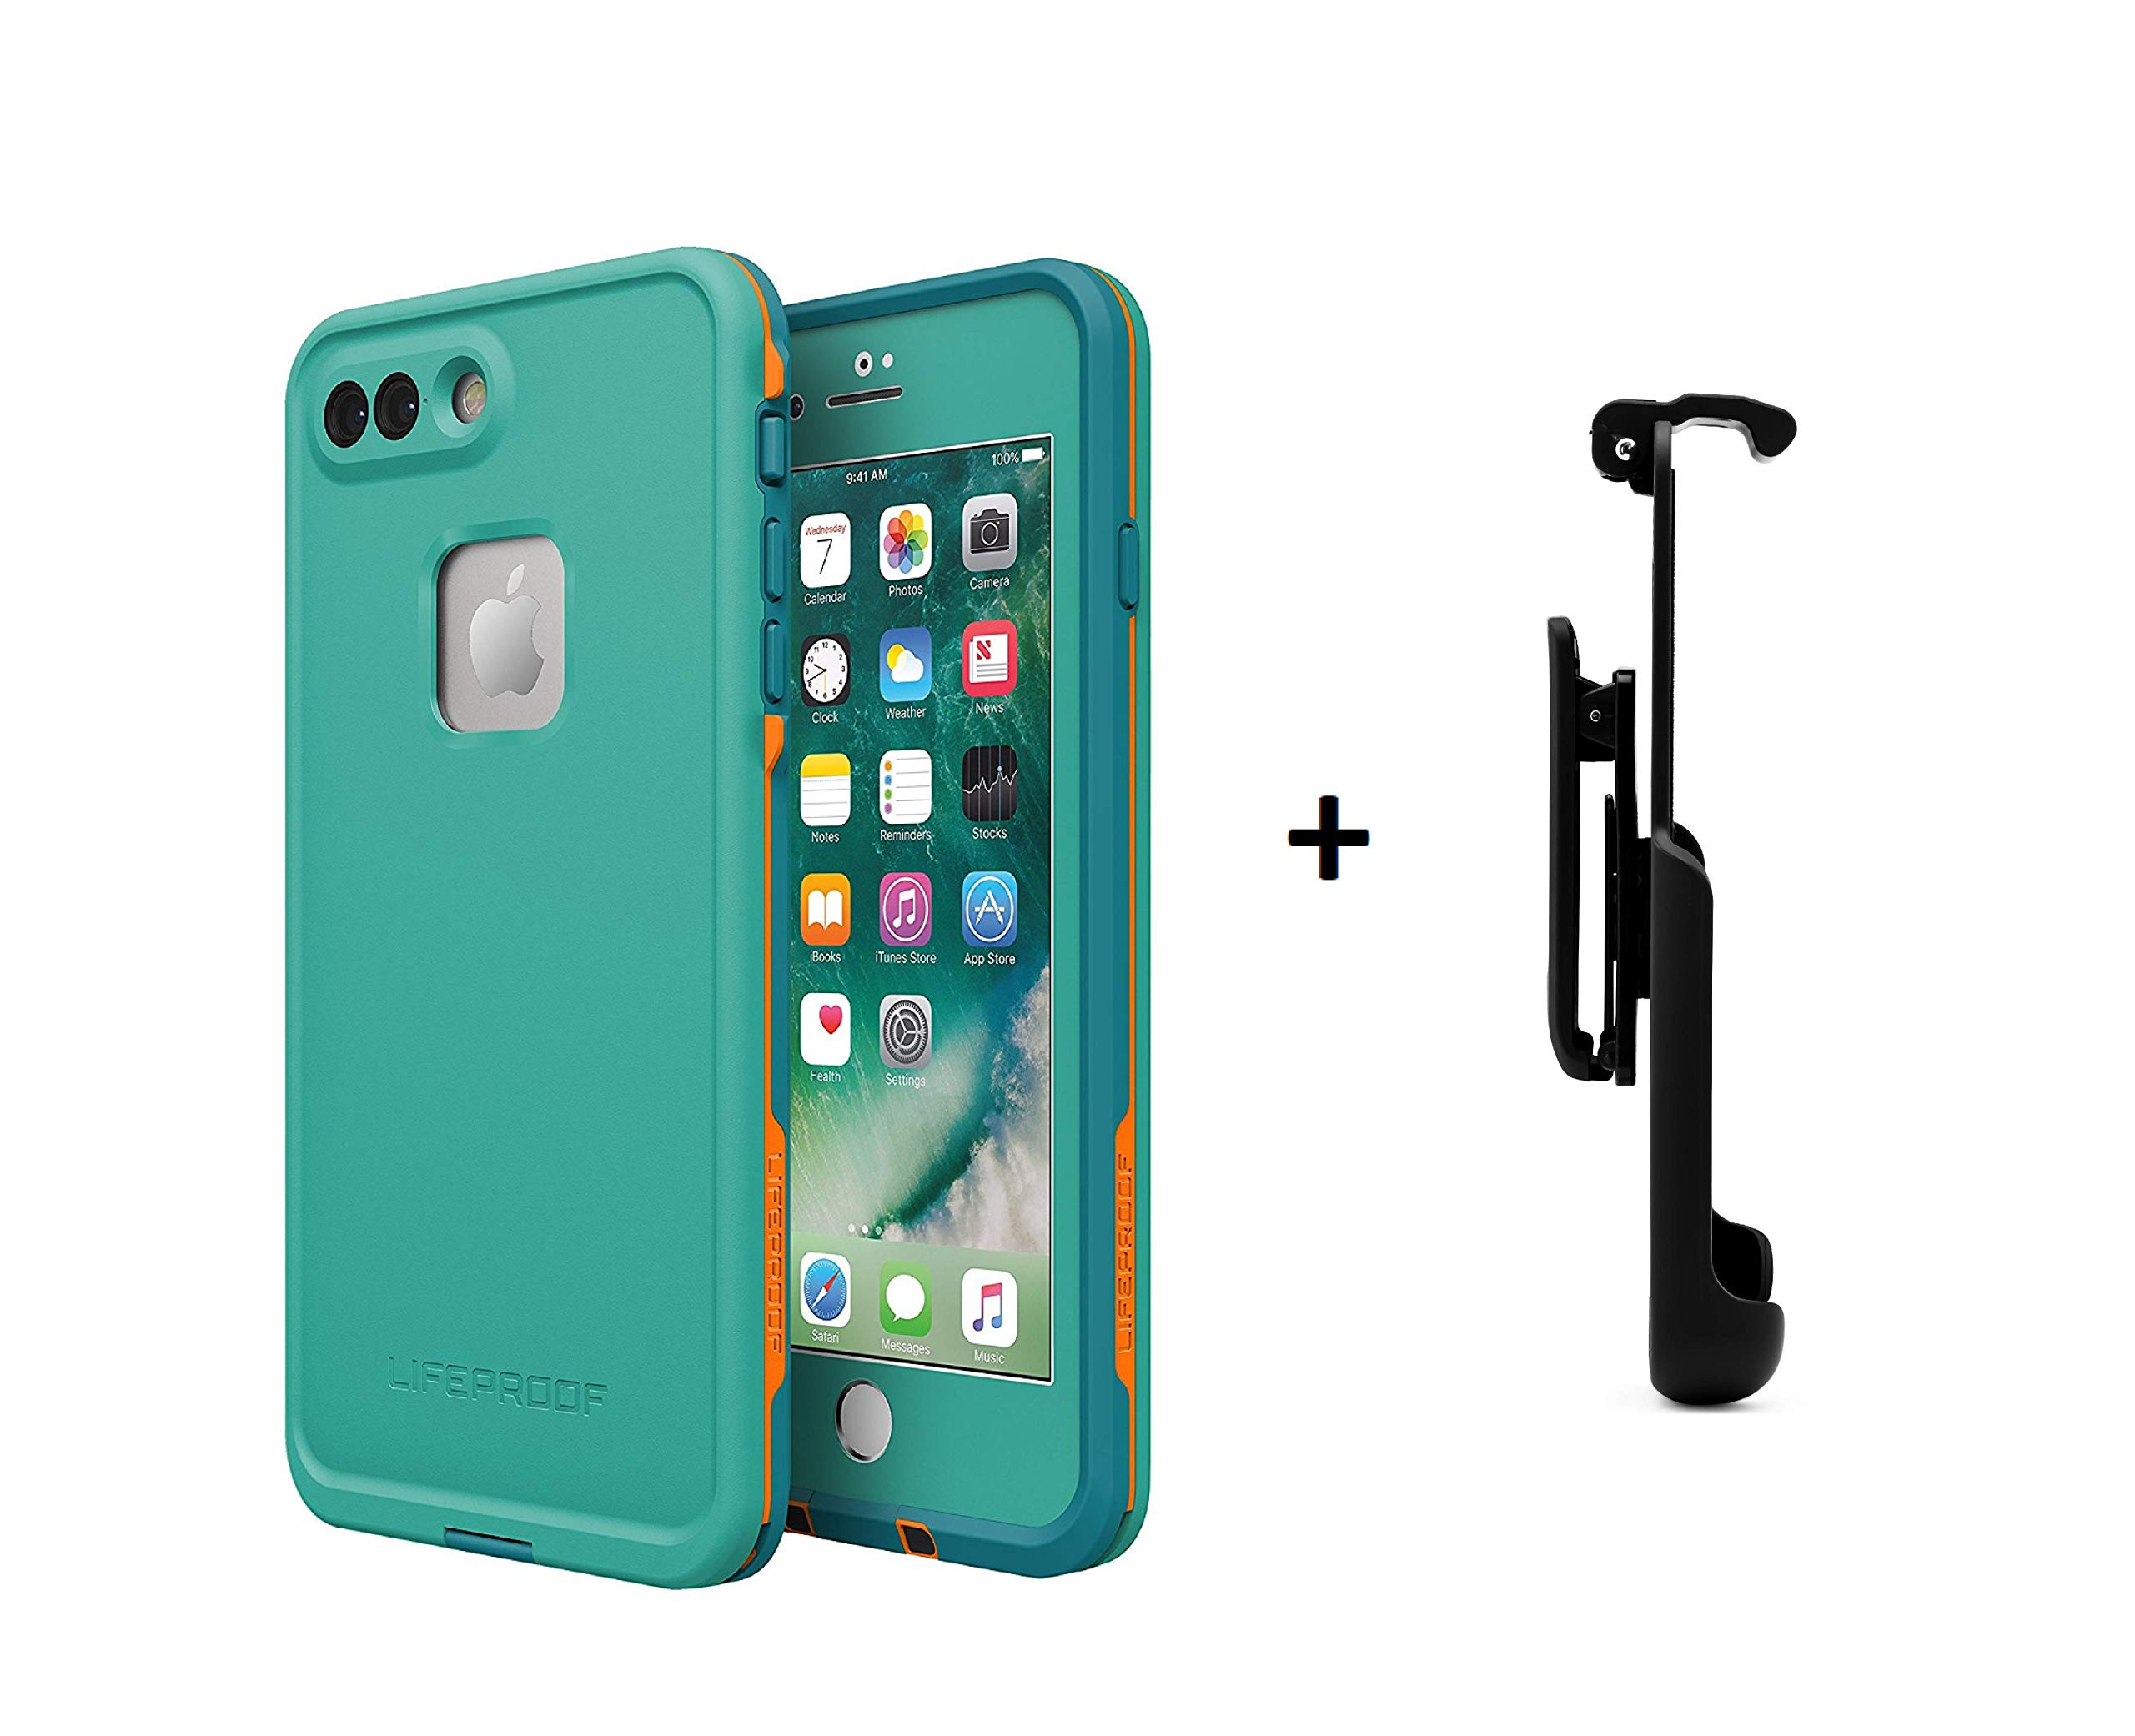 LifeProof FRĒ Series Waterproof Case for iPhone 7 Plus (ONLY) - Retail Packaging (Sunset Bay + Gear Pro Belt Clip) by LifeProof